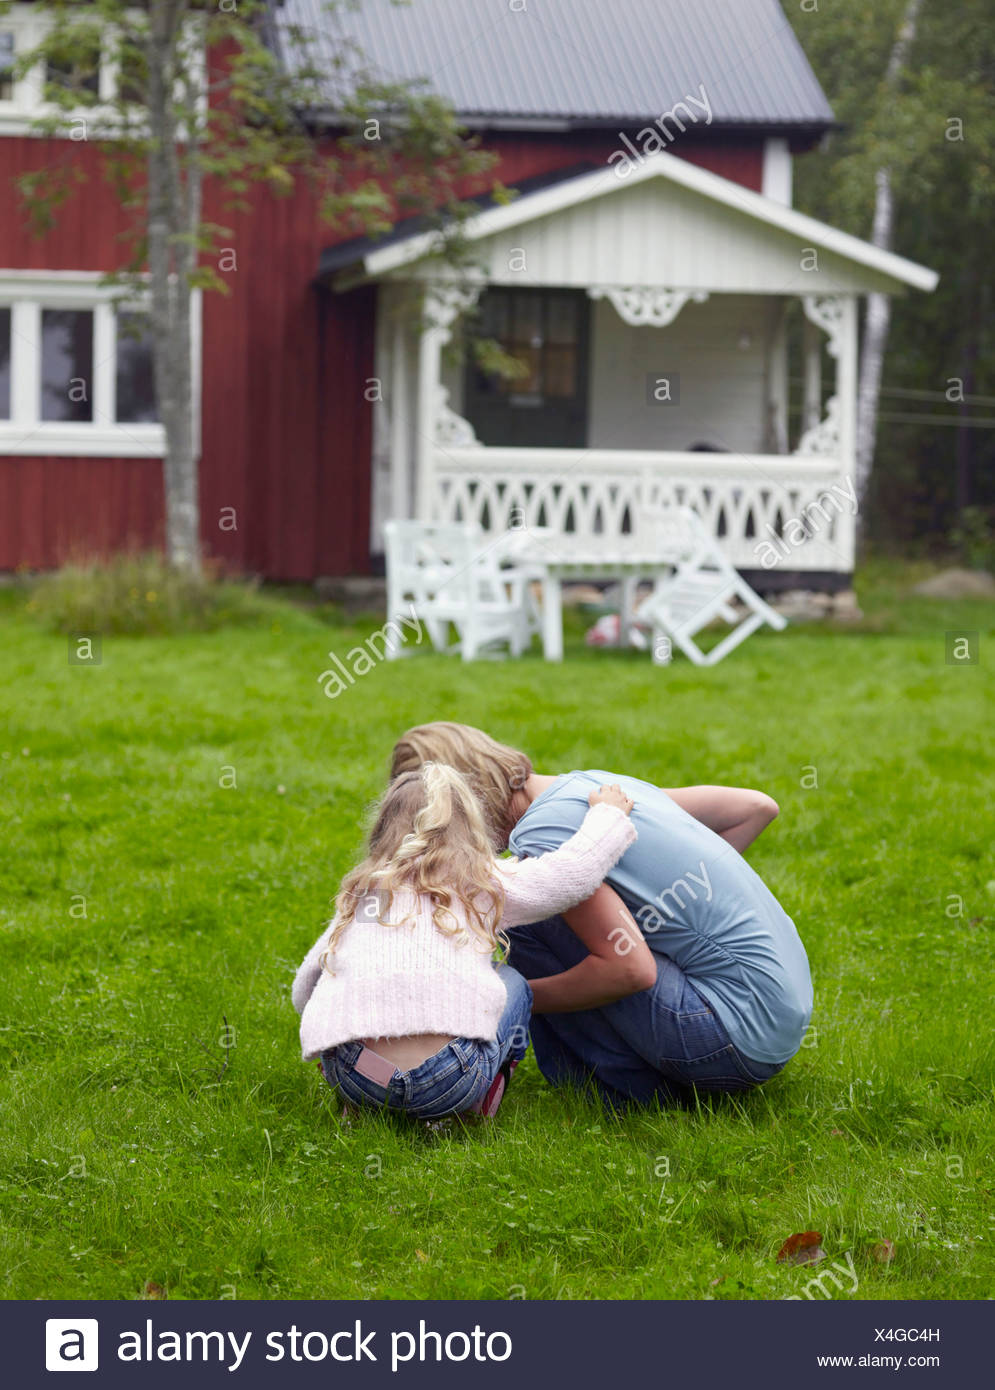 Woman with young girl crouched down in yard. - Stock Image